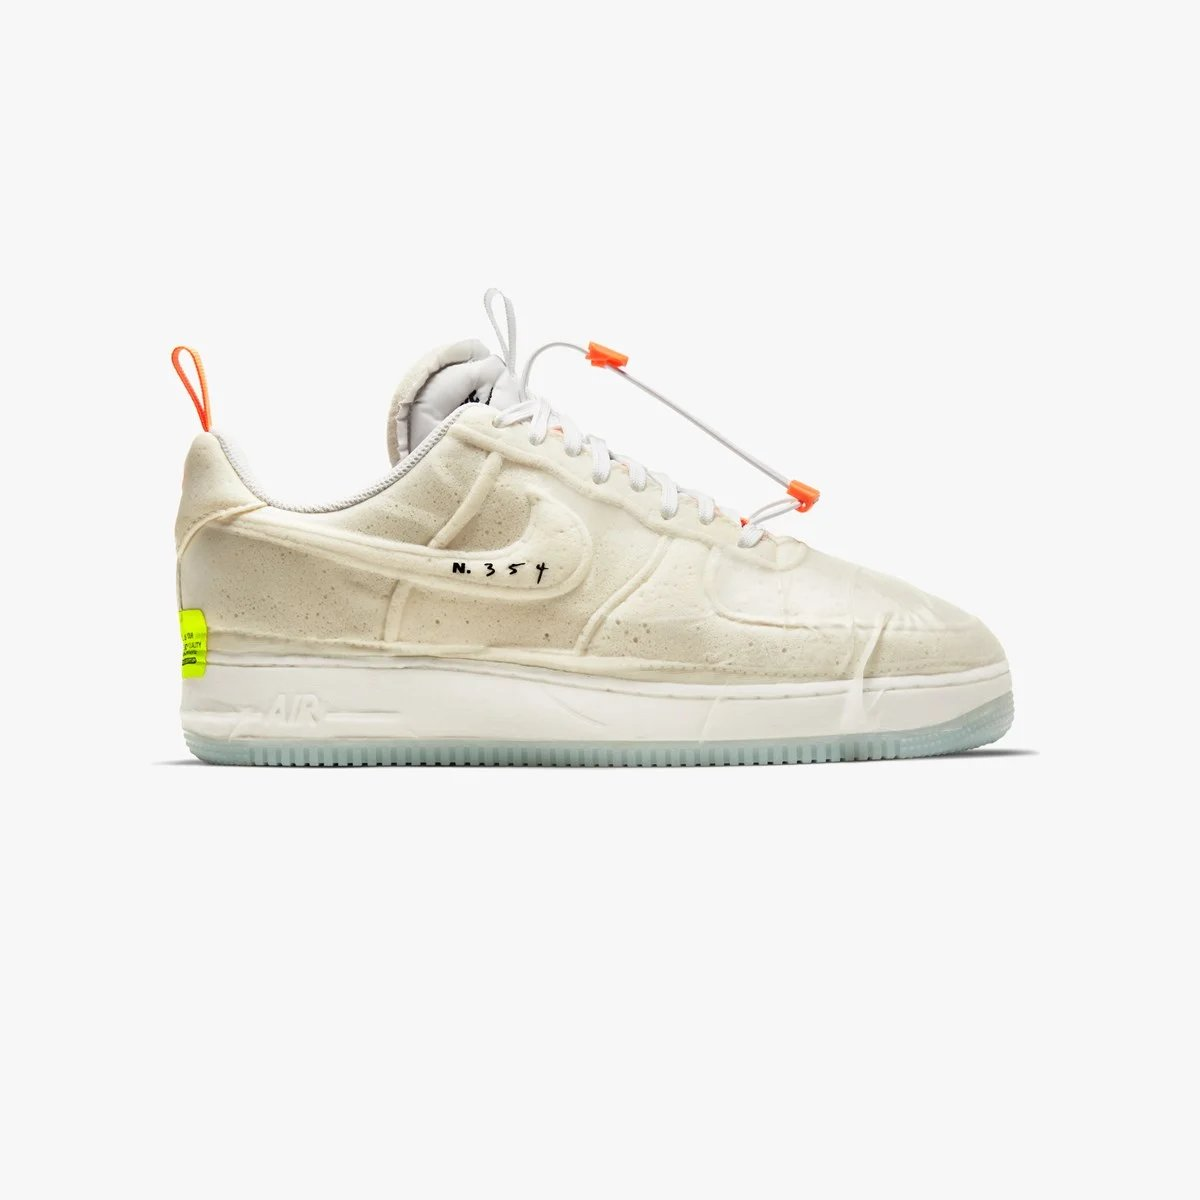 Live in 30 minutes via SNS: Nike Air Force 1